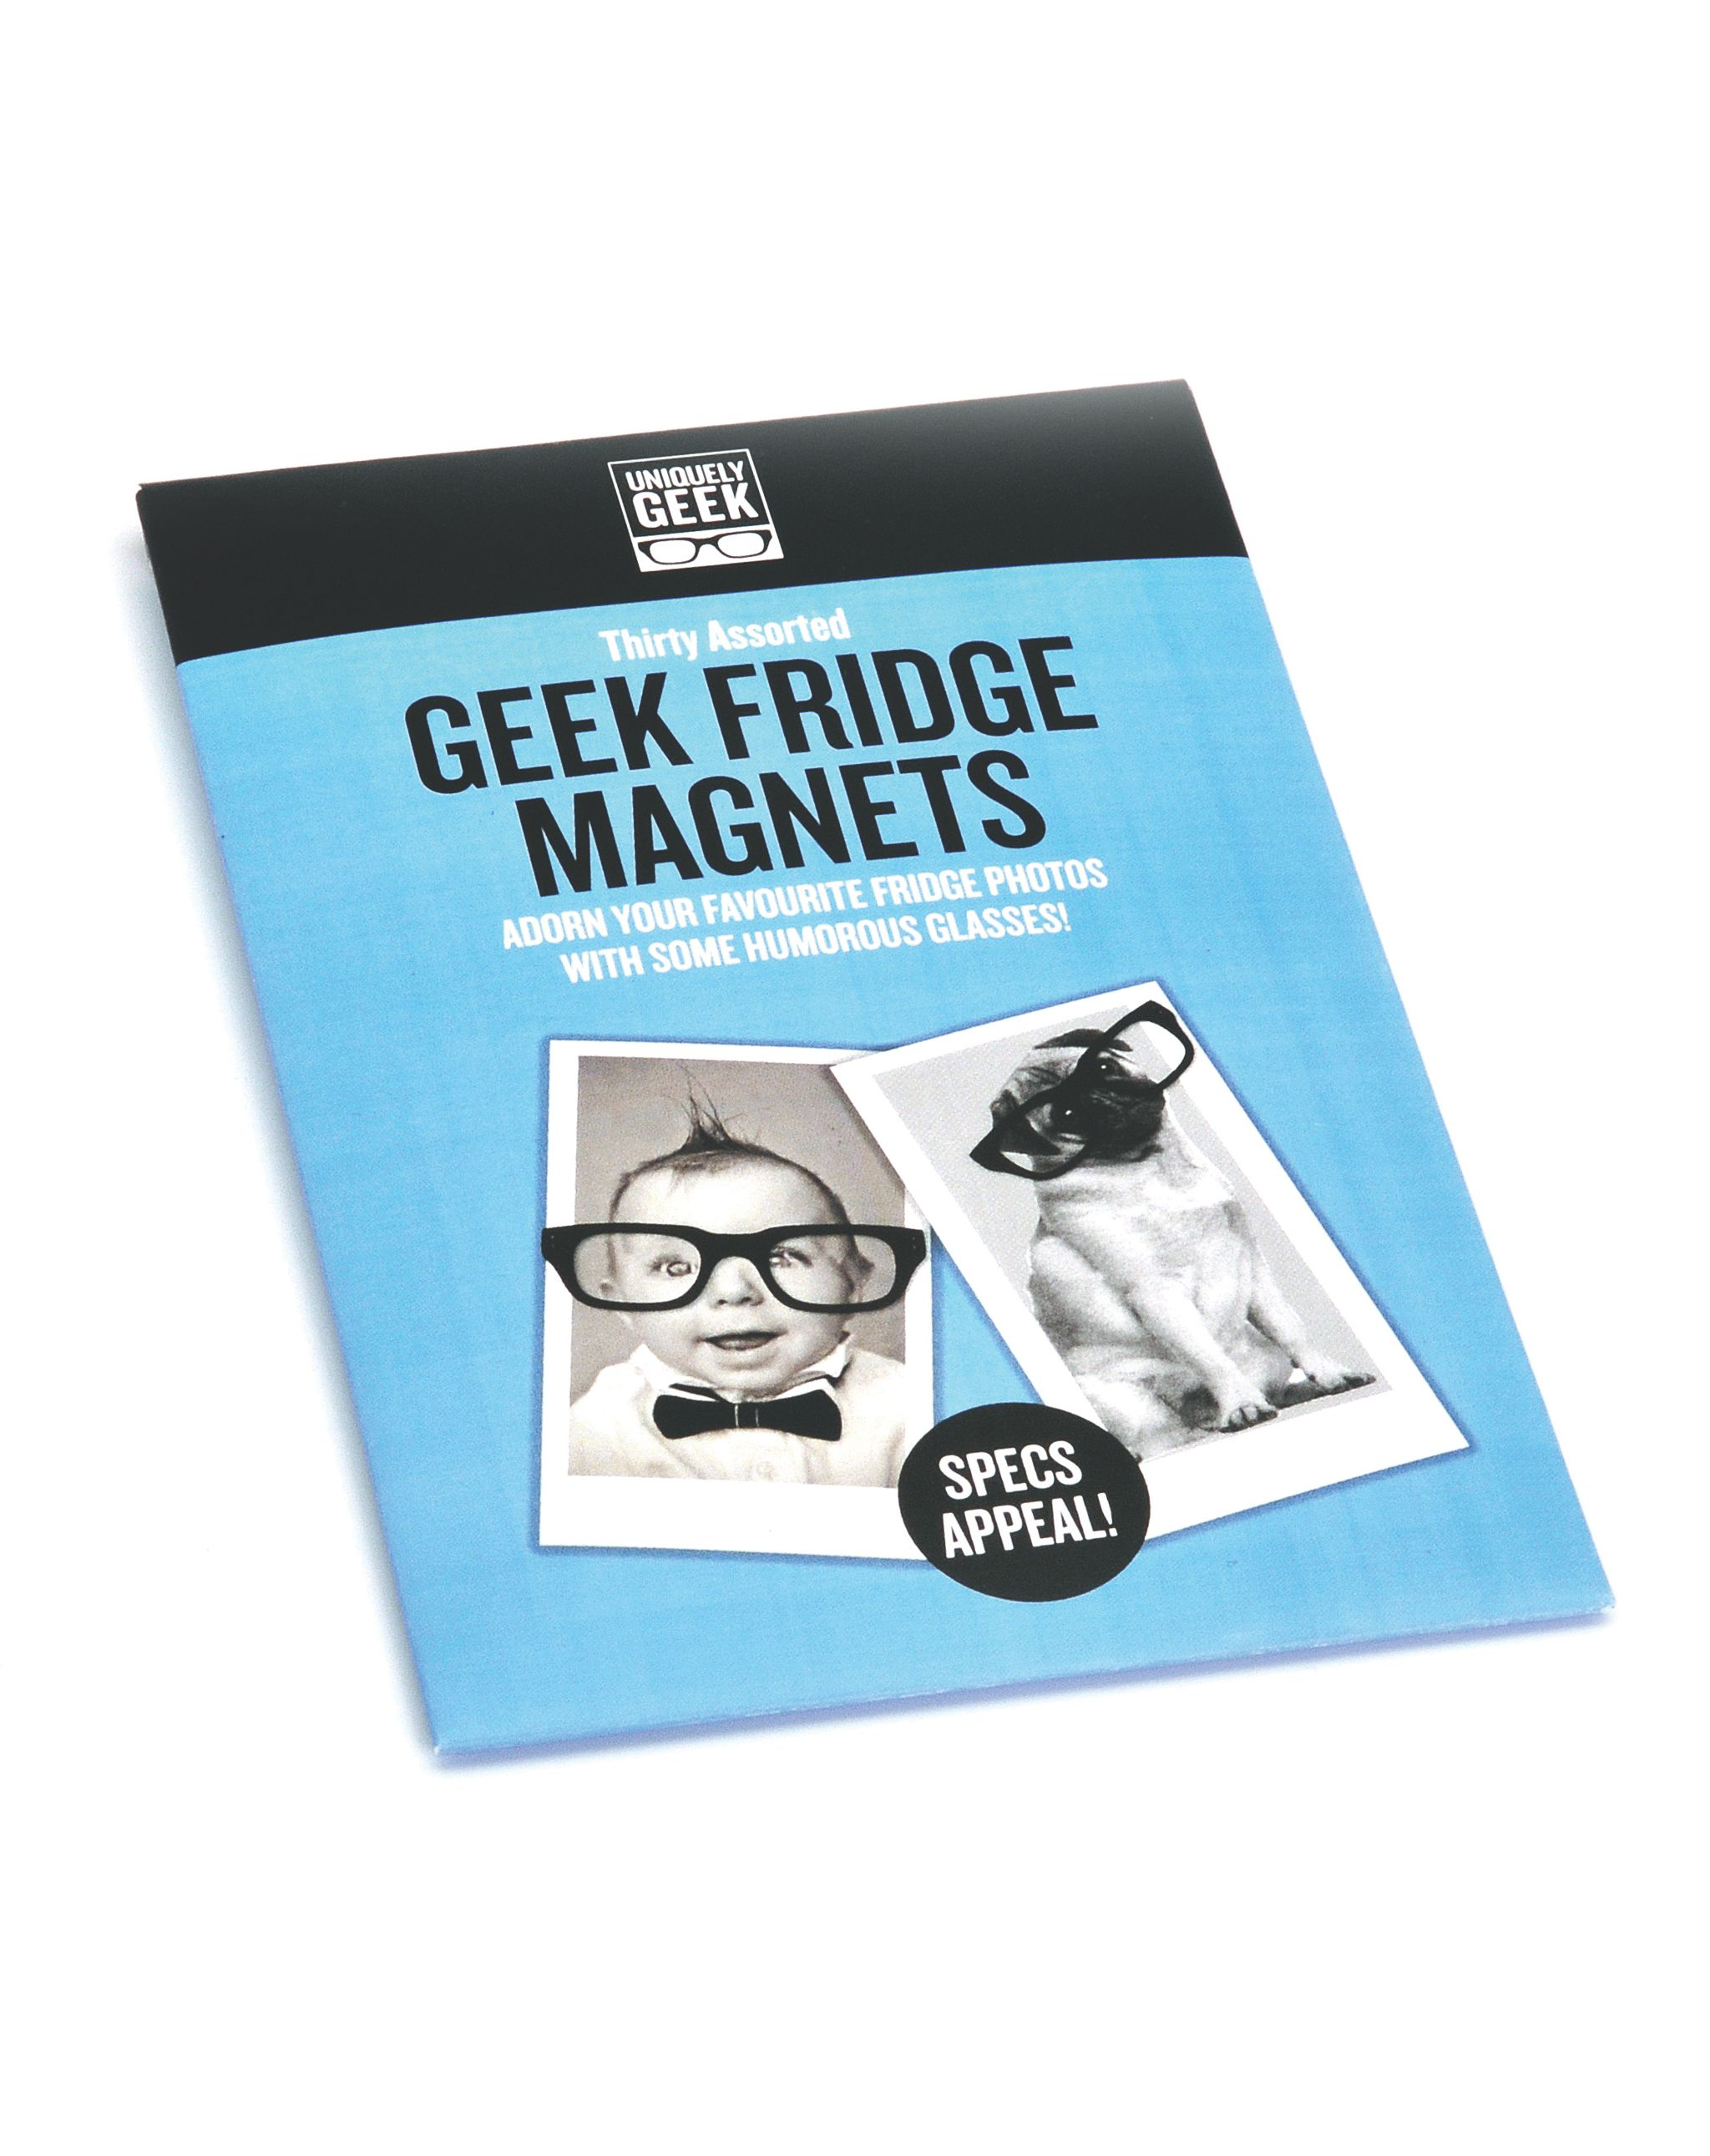 Geek fridge magnets